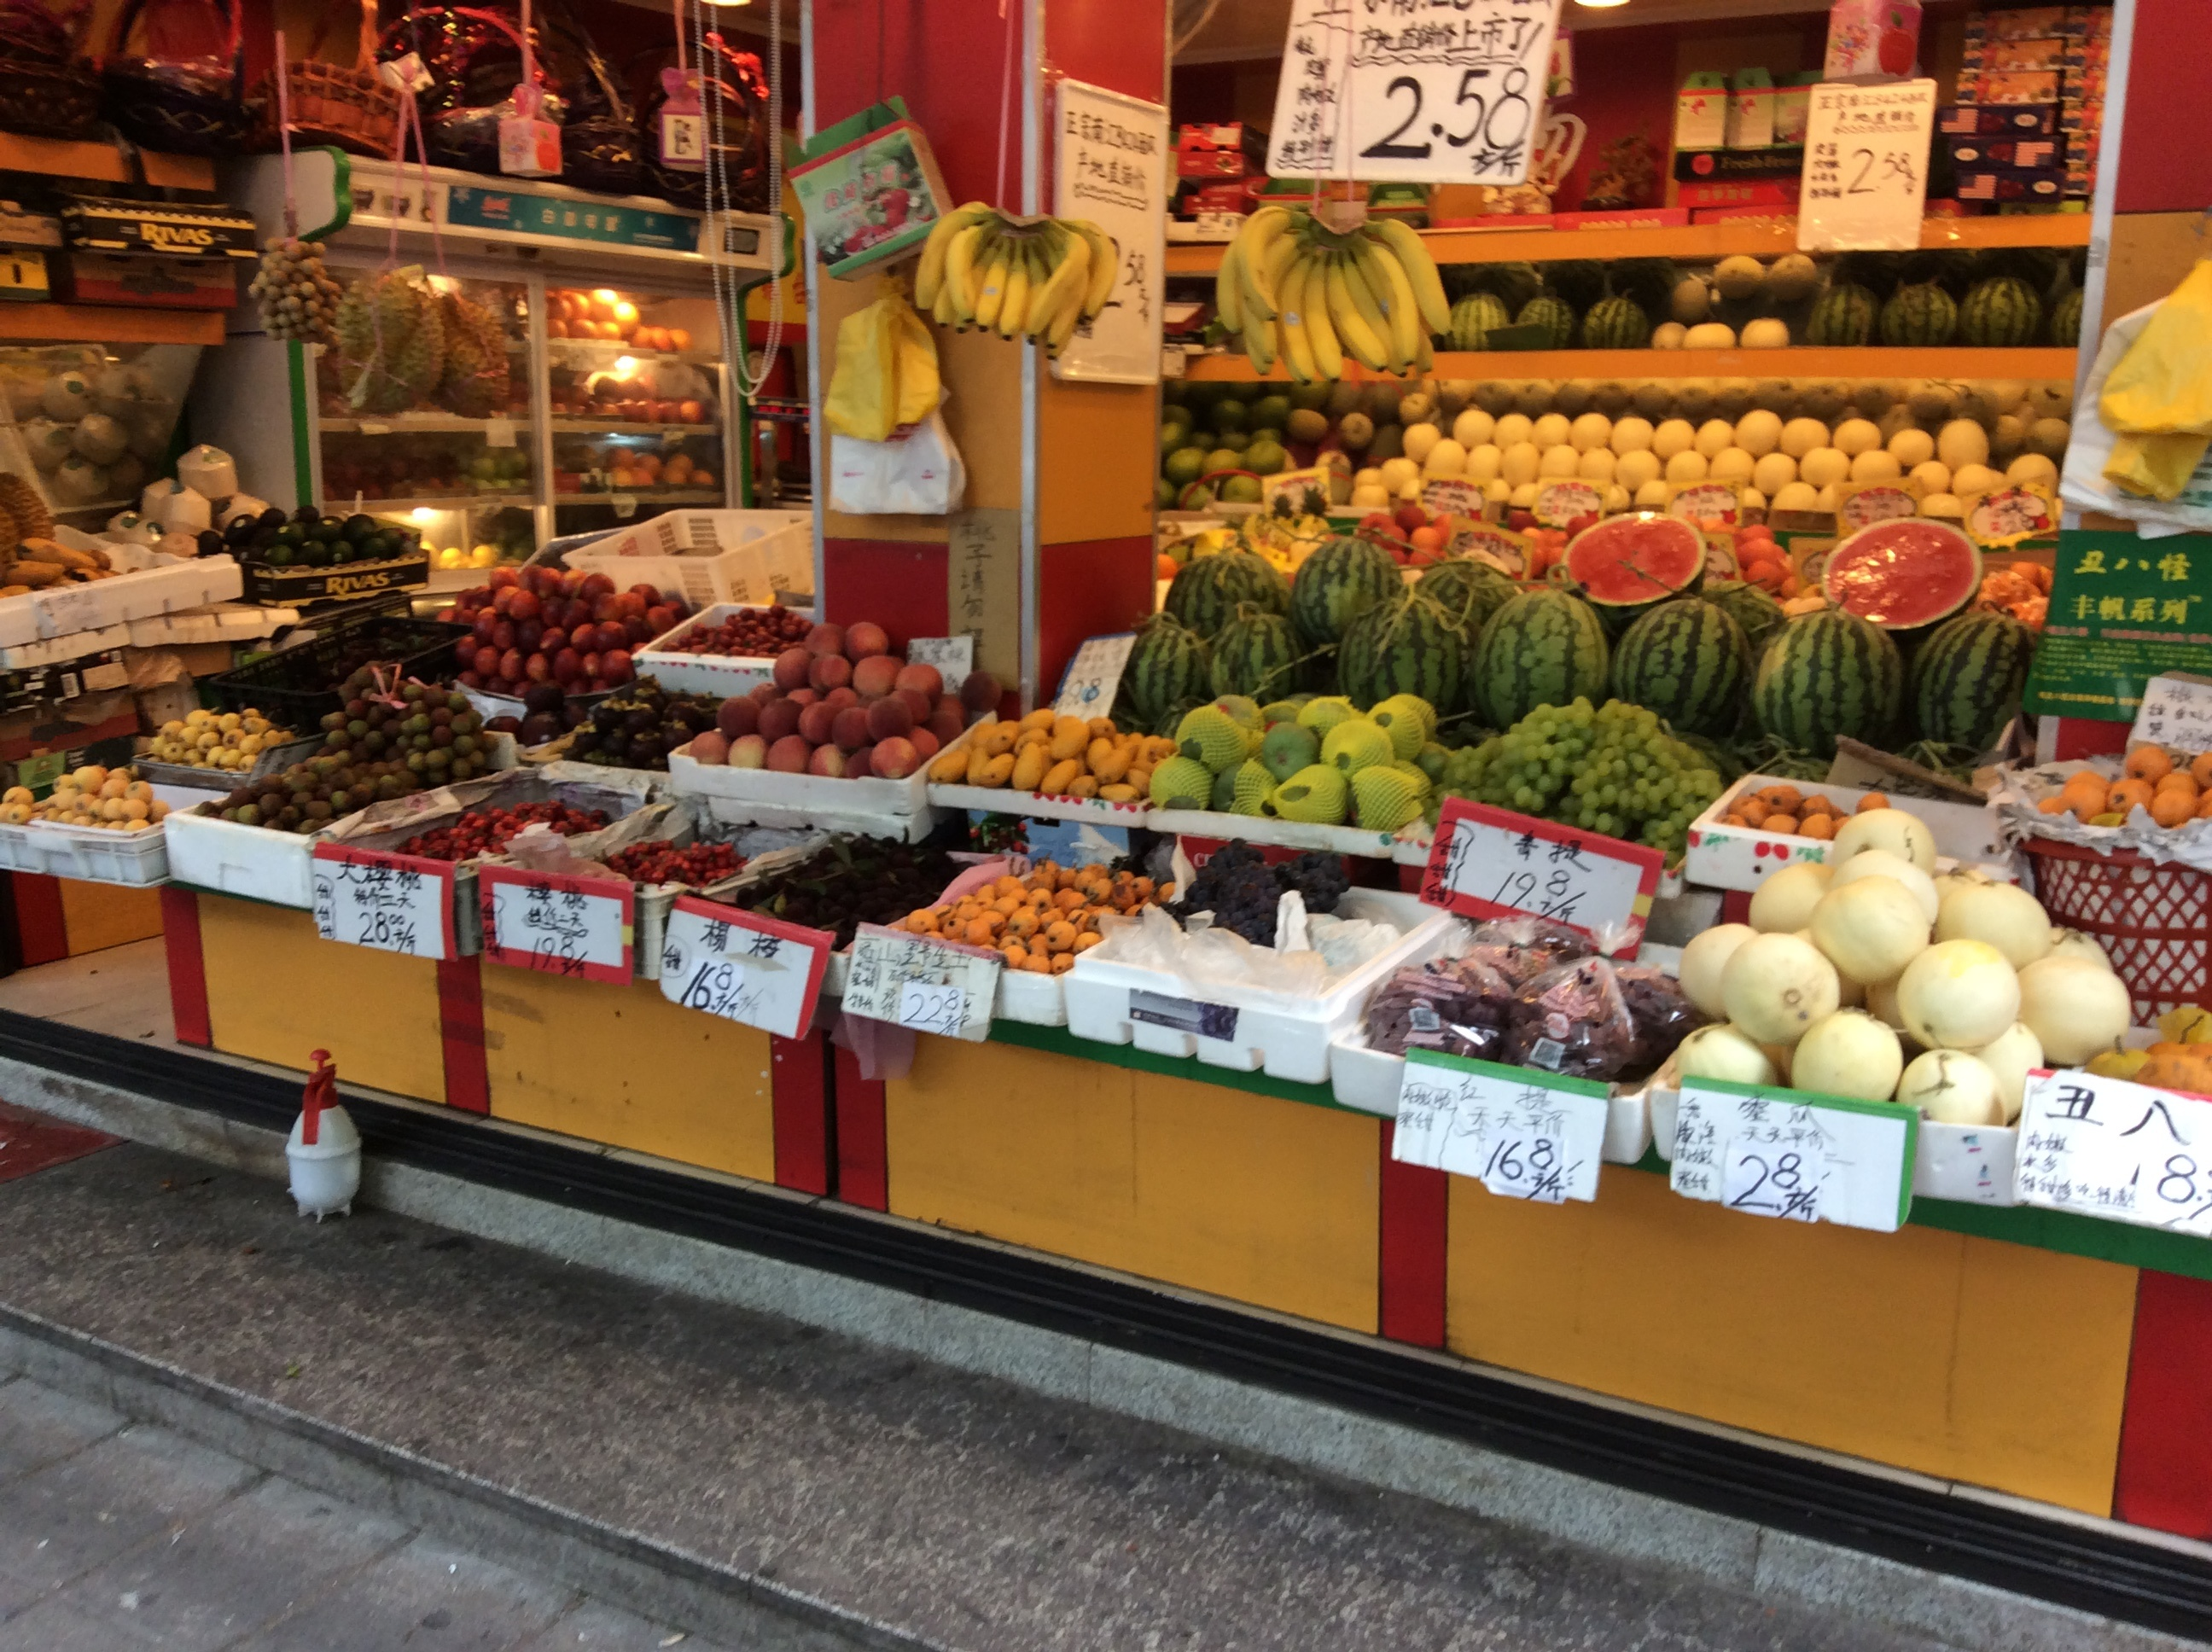 CAPAStudyAbroad_ShanghaiWalksPost_-_A_colourful_fruit_and_vegetable_store_on_Wulumqi_Lu-1.jpg